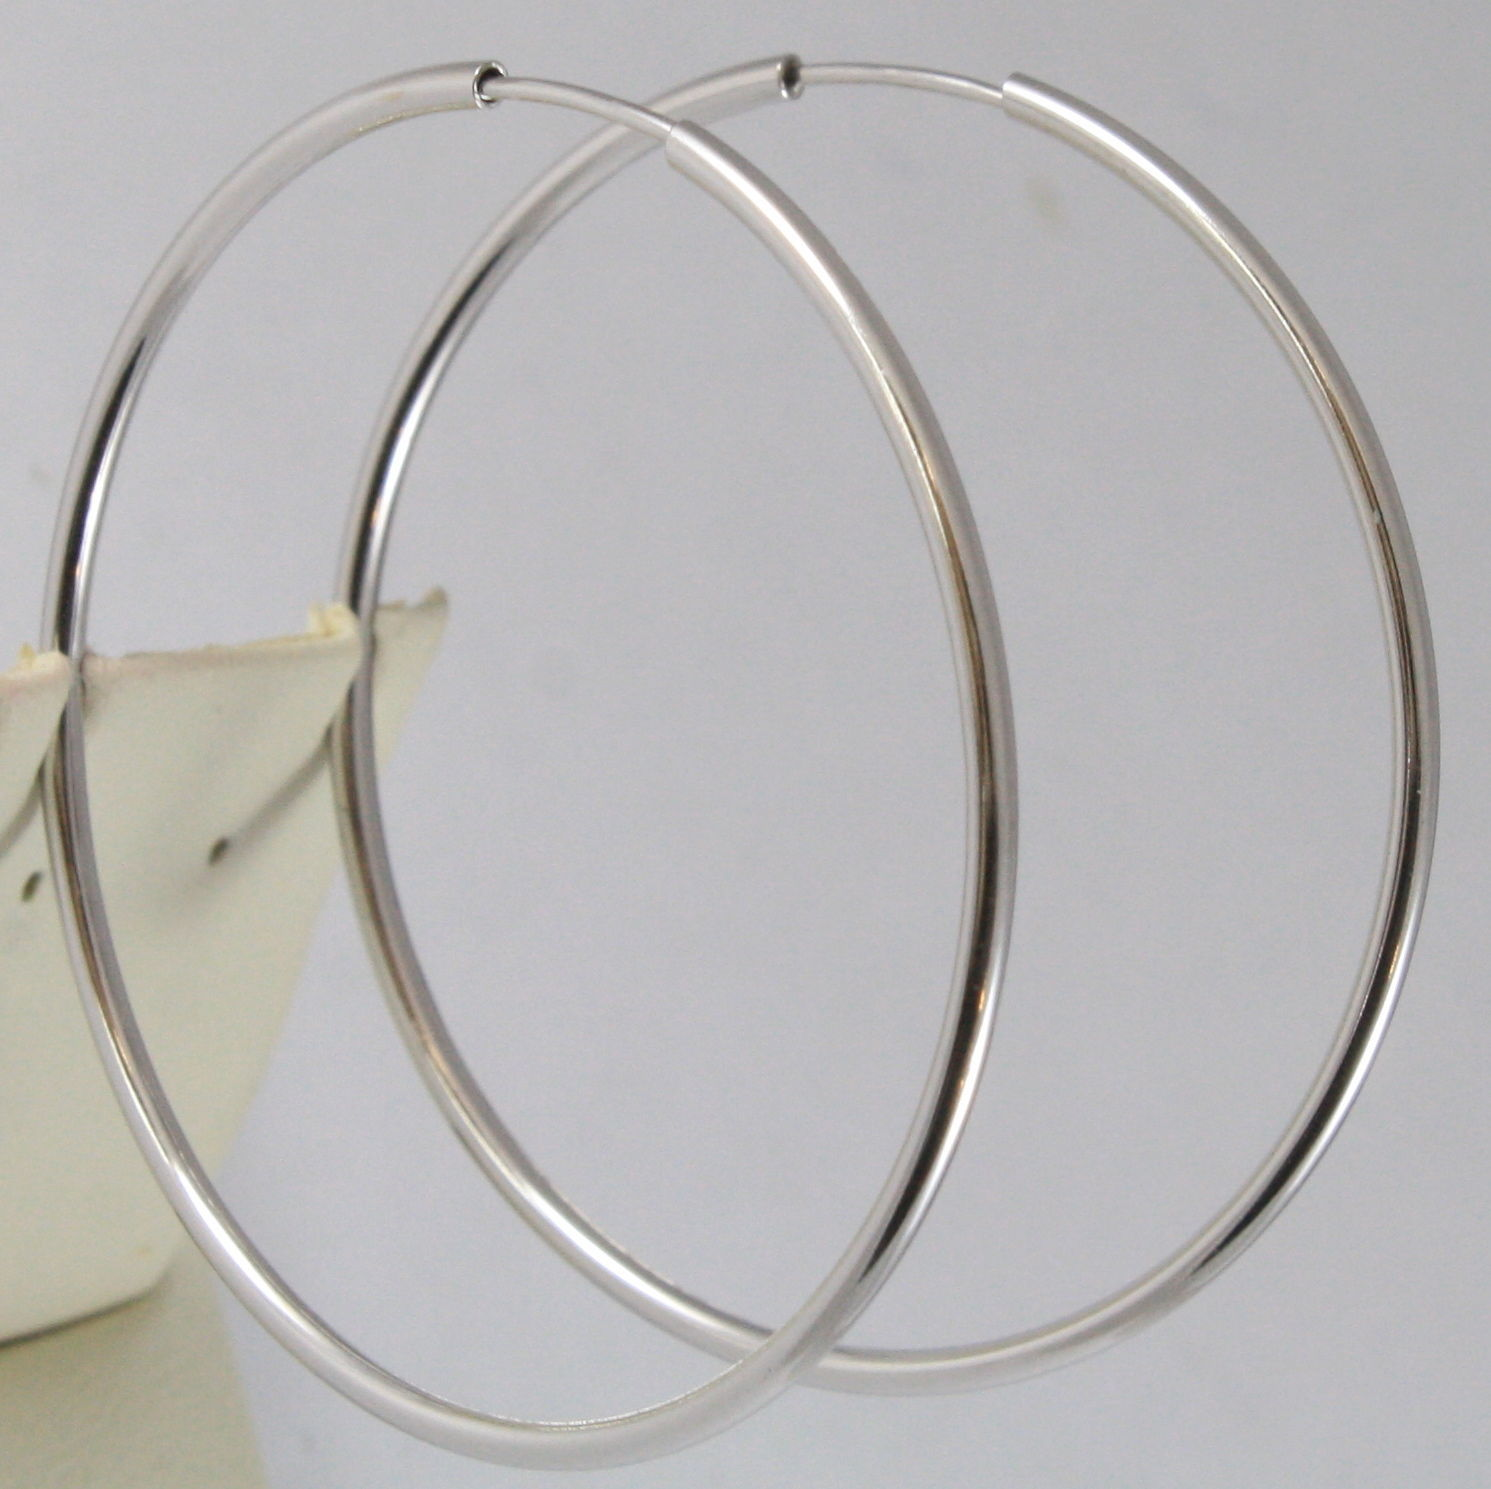 SOLID 18K WHITE GOLD CIRCLE EARRINGS HOOP, TUBE, DIAMETER 1.89 In MADE IN ITALY